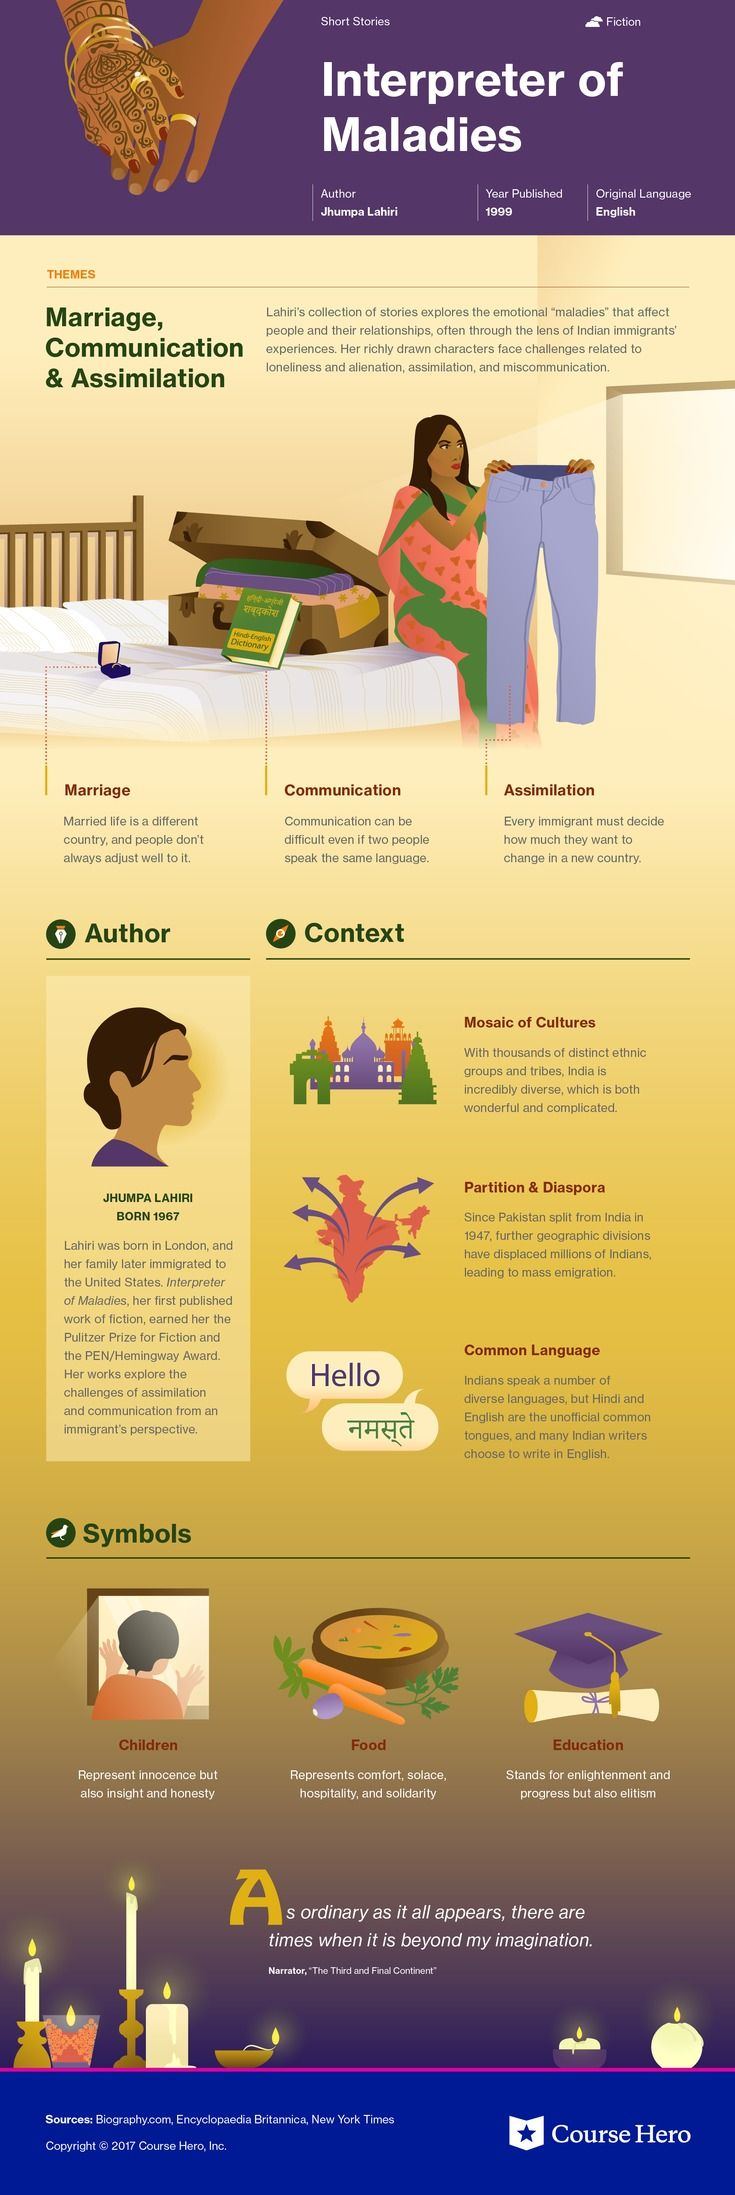 This @CourseHero infographic on Interpreter of Maladies is both visually stunning and informative!